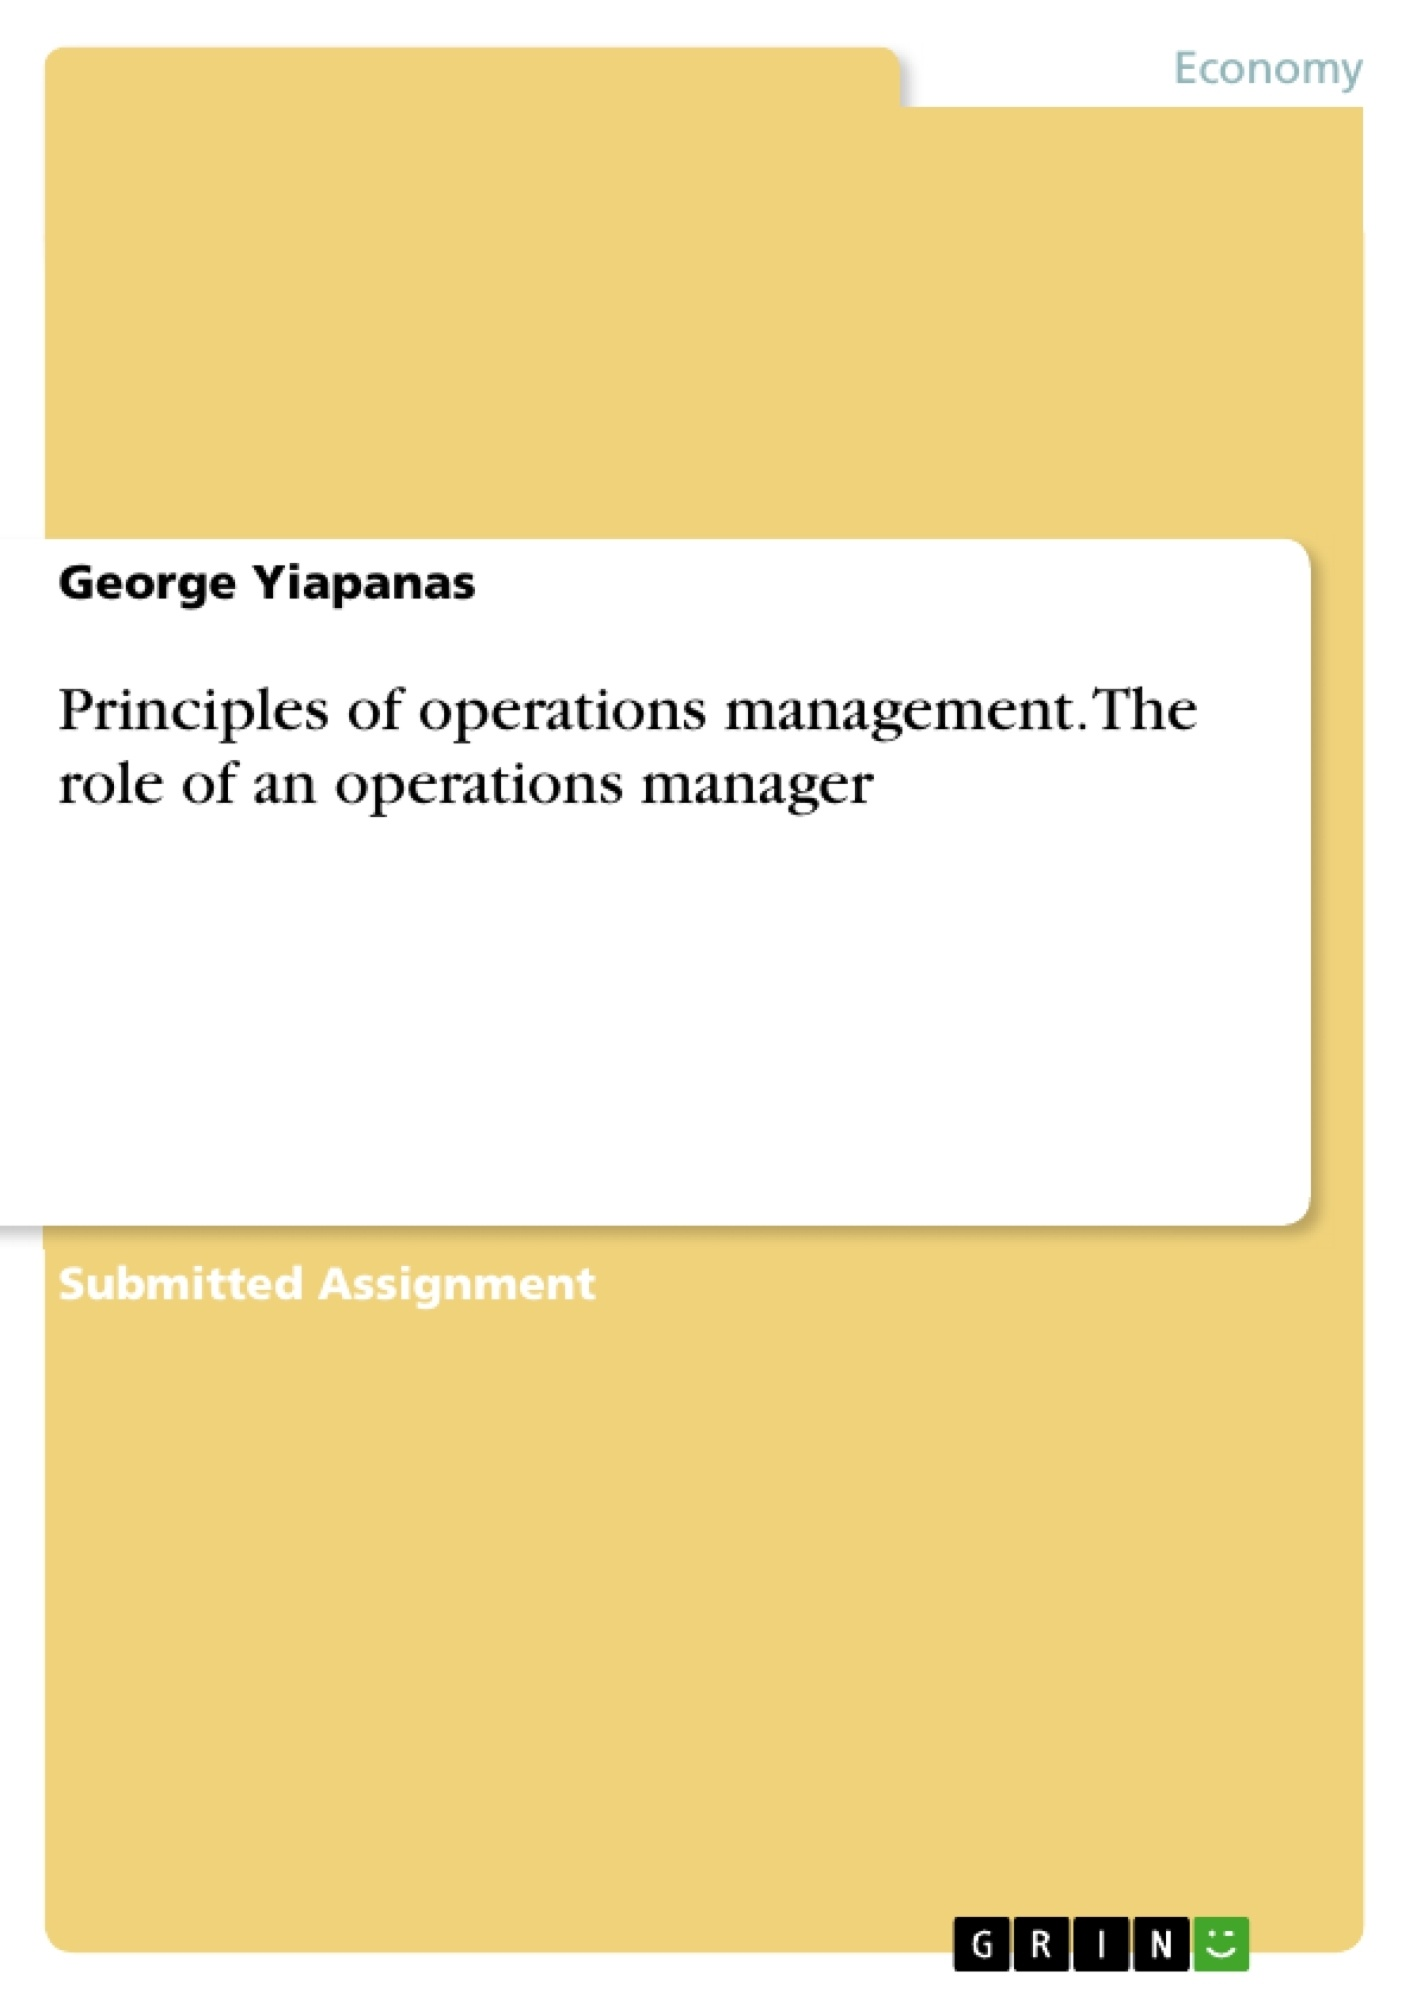 Title: Principles of operations management. The role of an operations manager